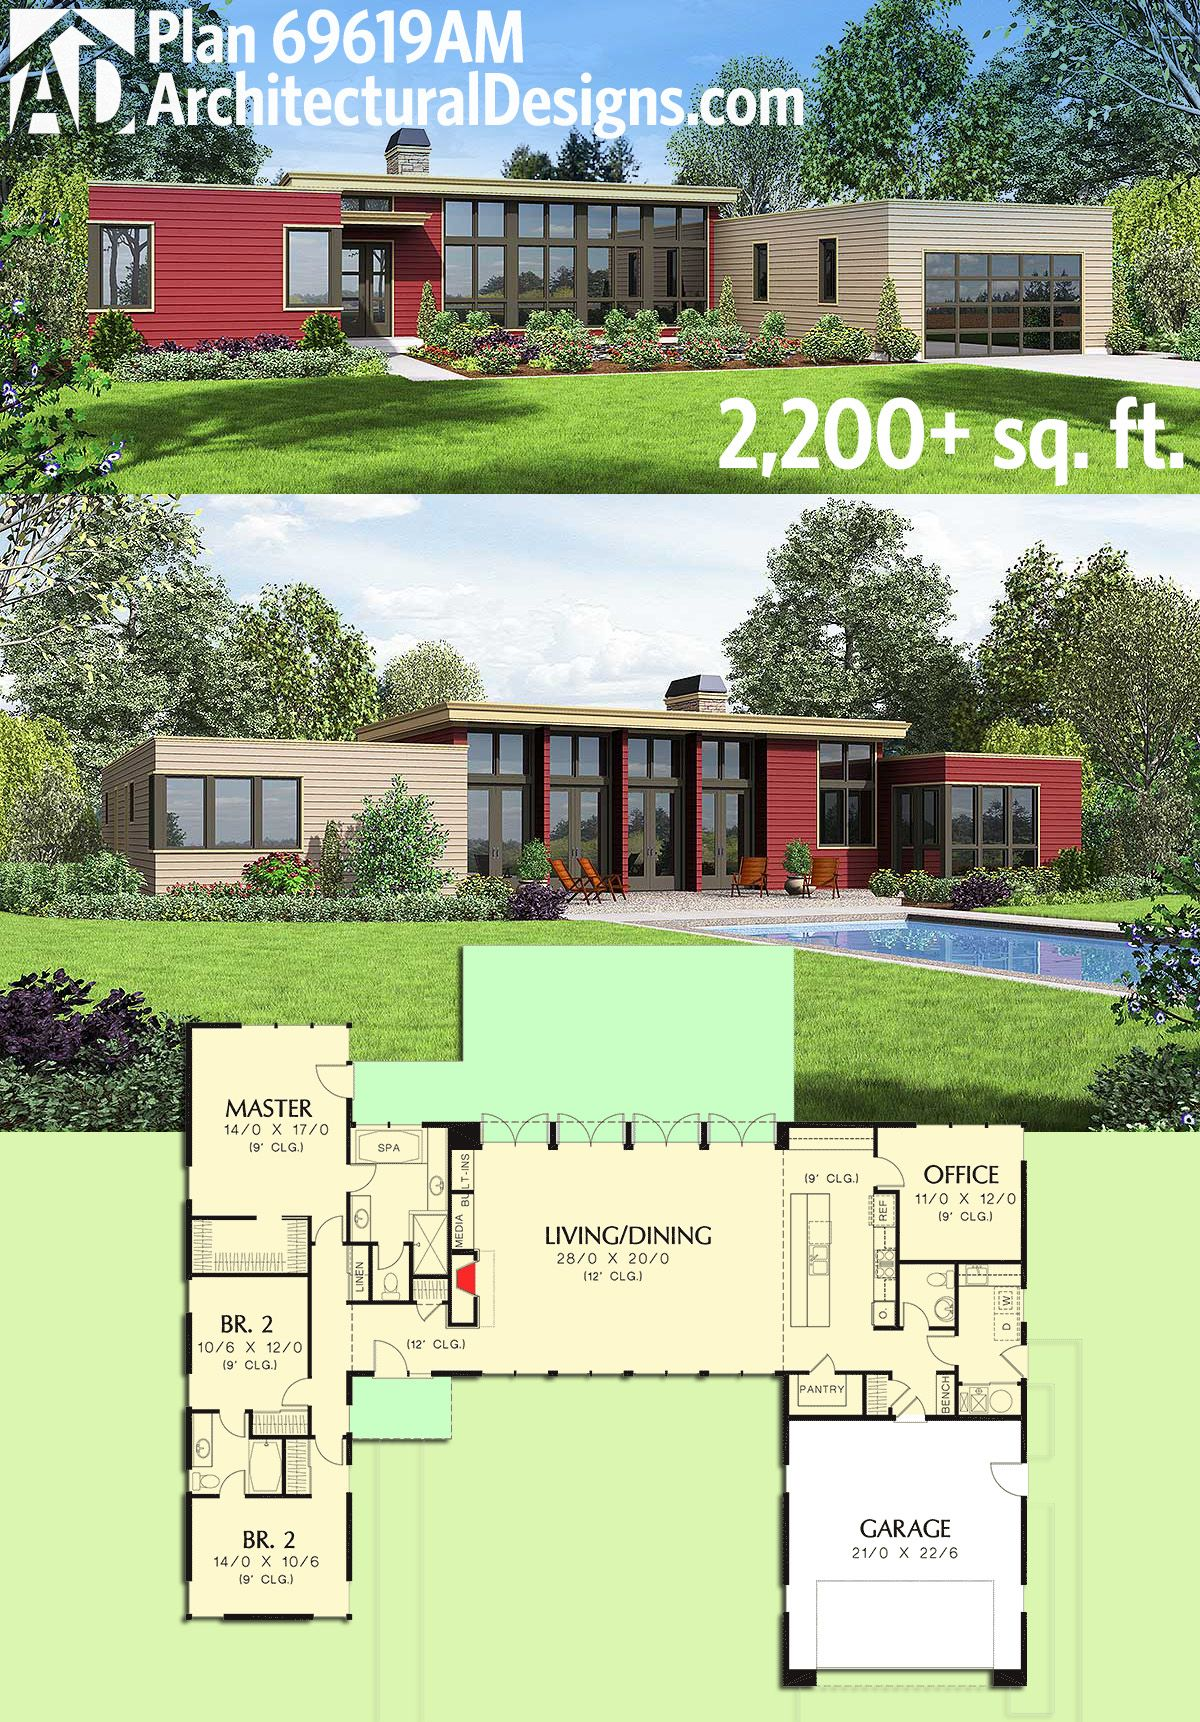 Architectural designs modern house plan 69619am gives you over 2200 square feet